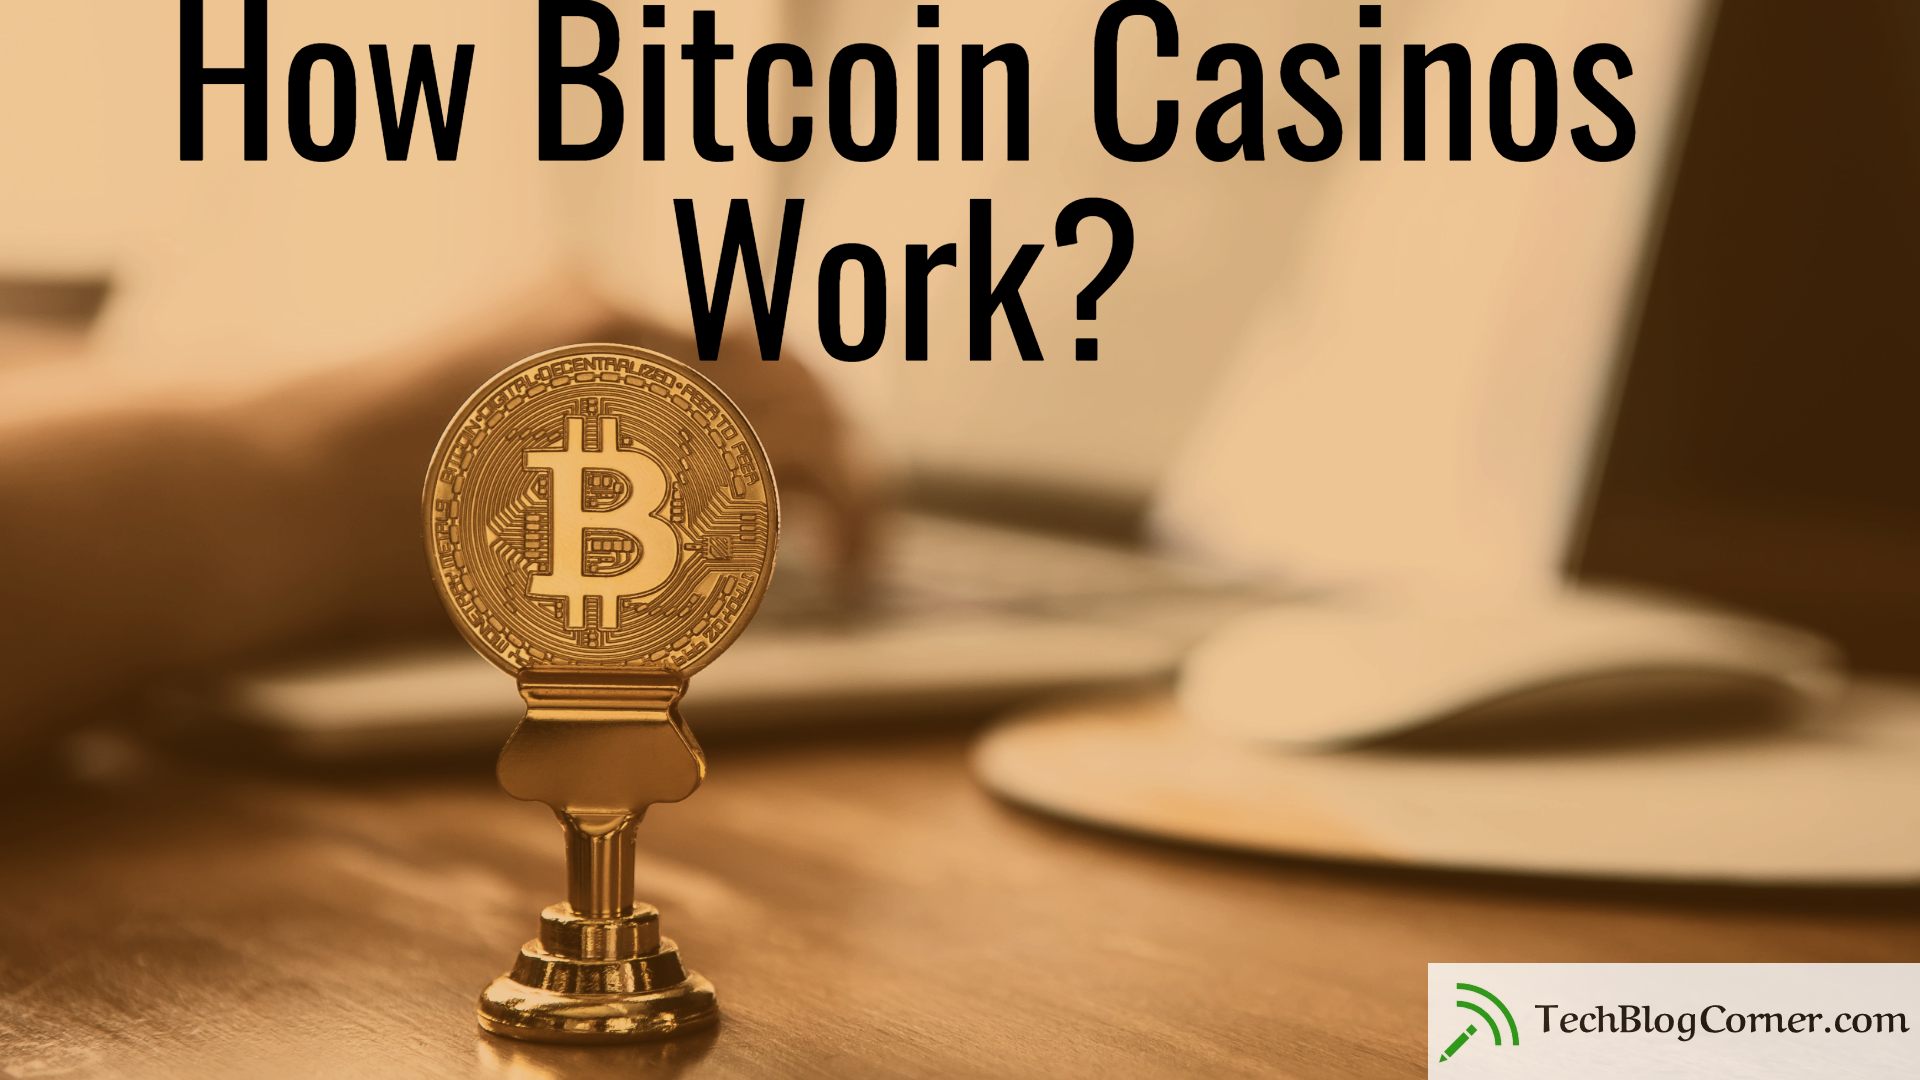 How Do Bitcoin Casinos Work?